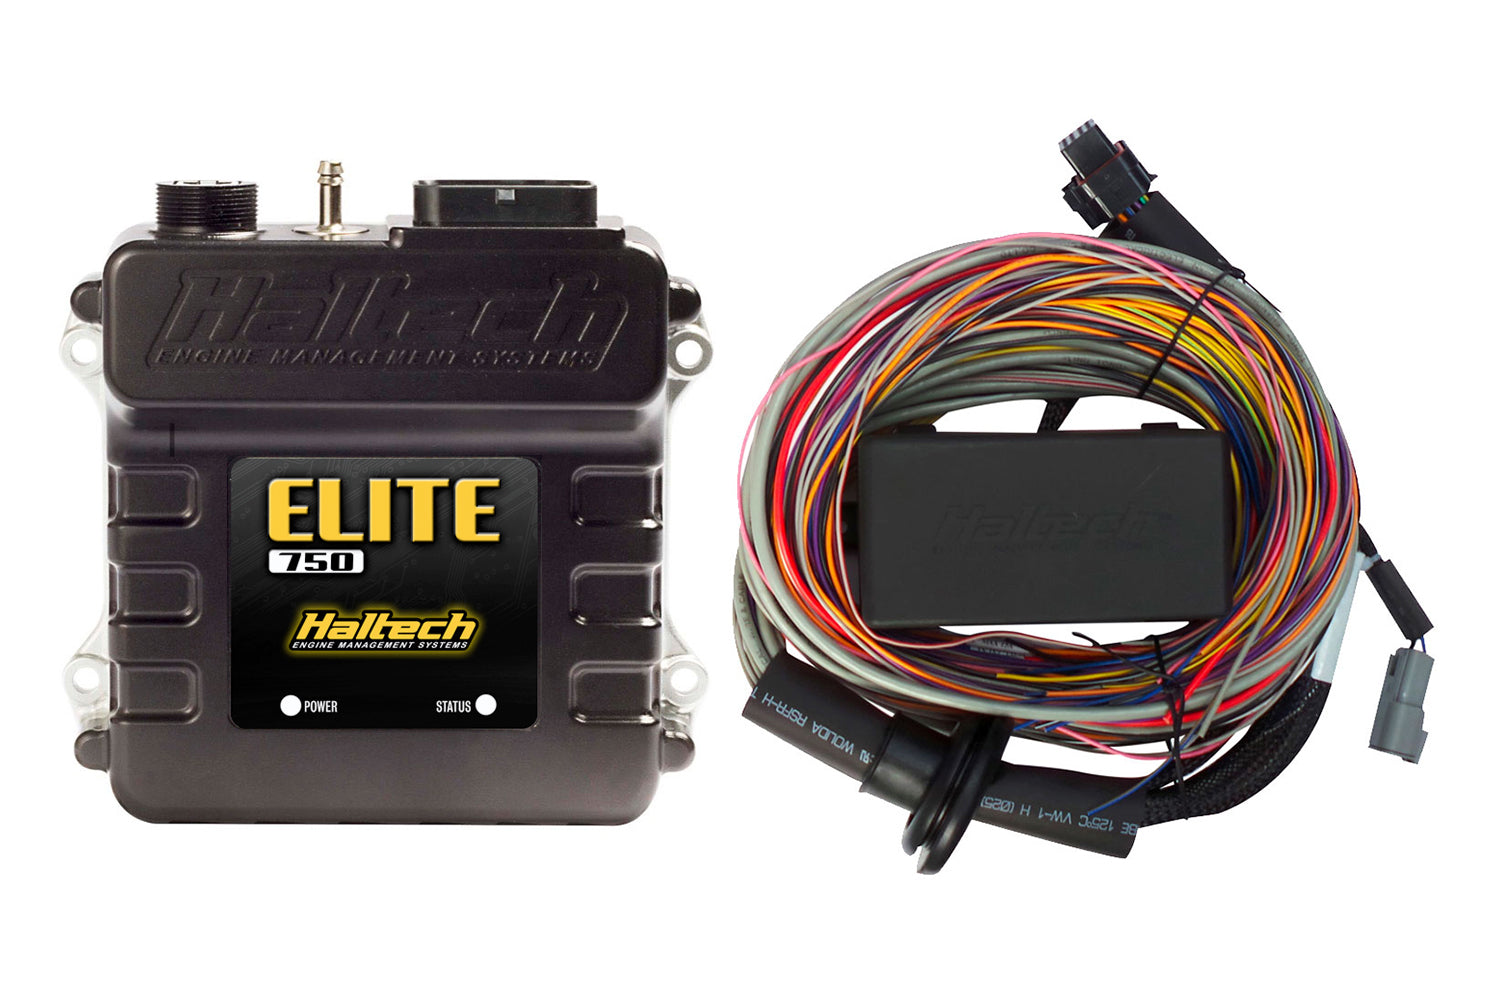 Elite 750 + Premium Universal Wire-in Harness Kit HT-150604